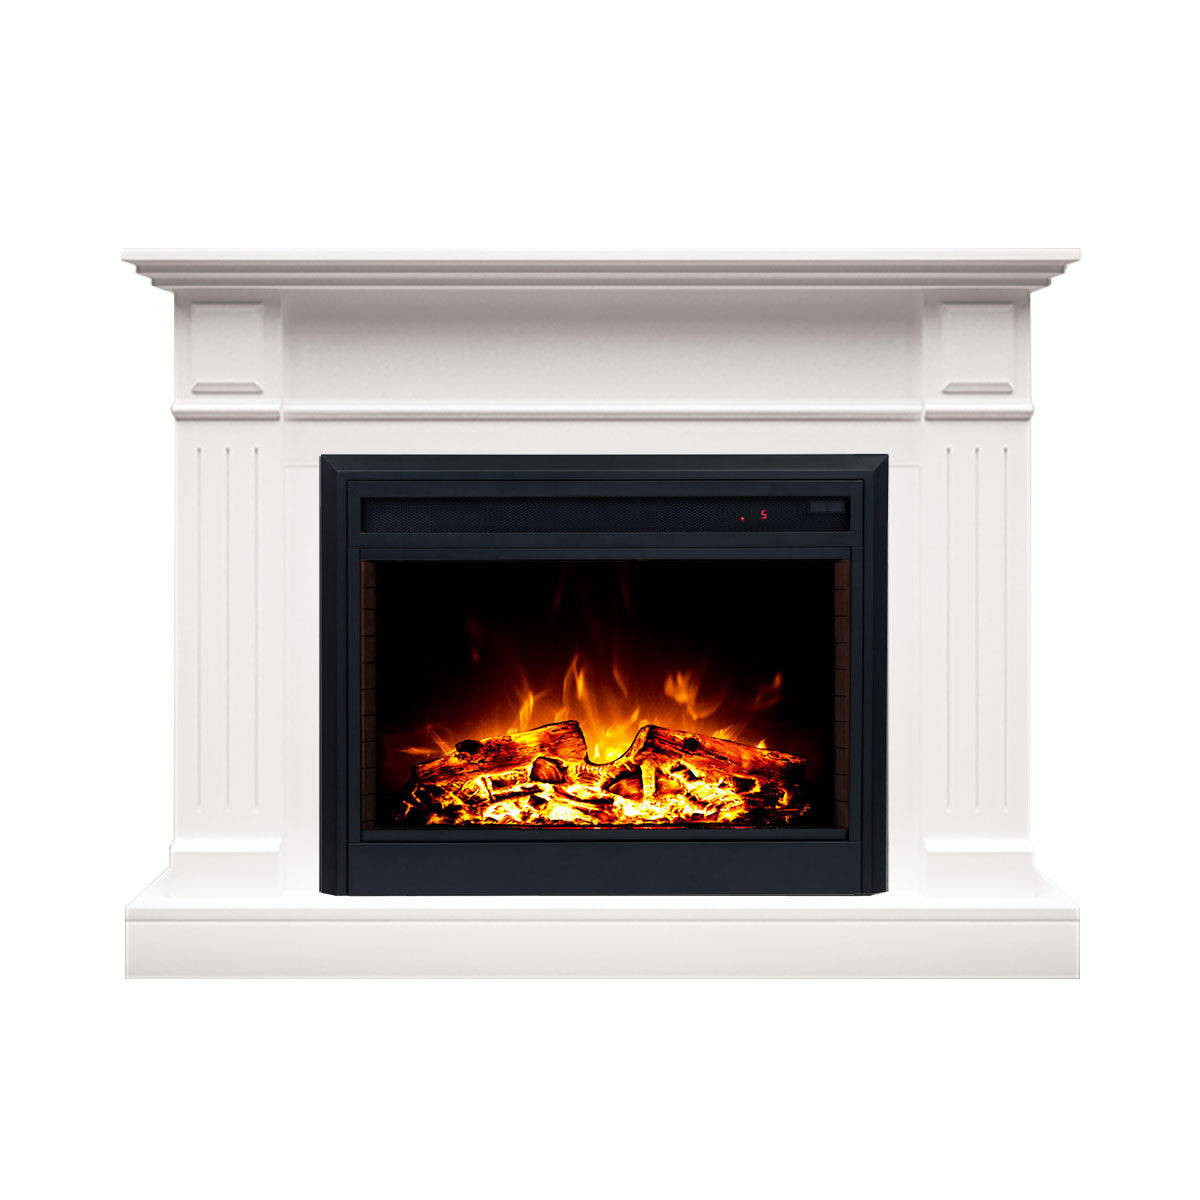 Brilliant Berwick 2000W Electric Fireplace Heater Mantel Suite White Download Free Architecture Designs Jebrpmadebymaigaardcom